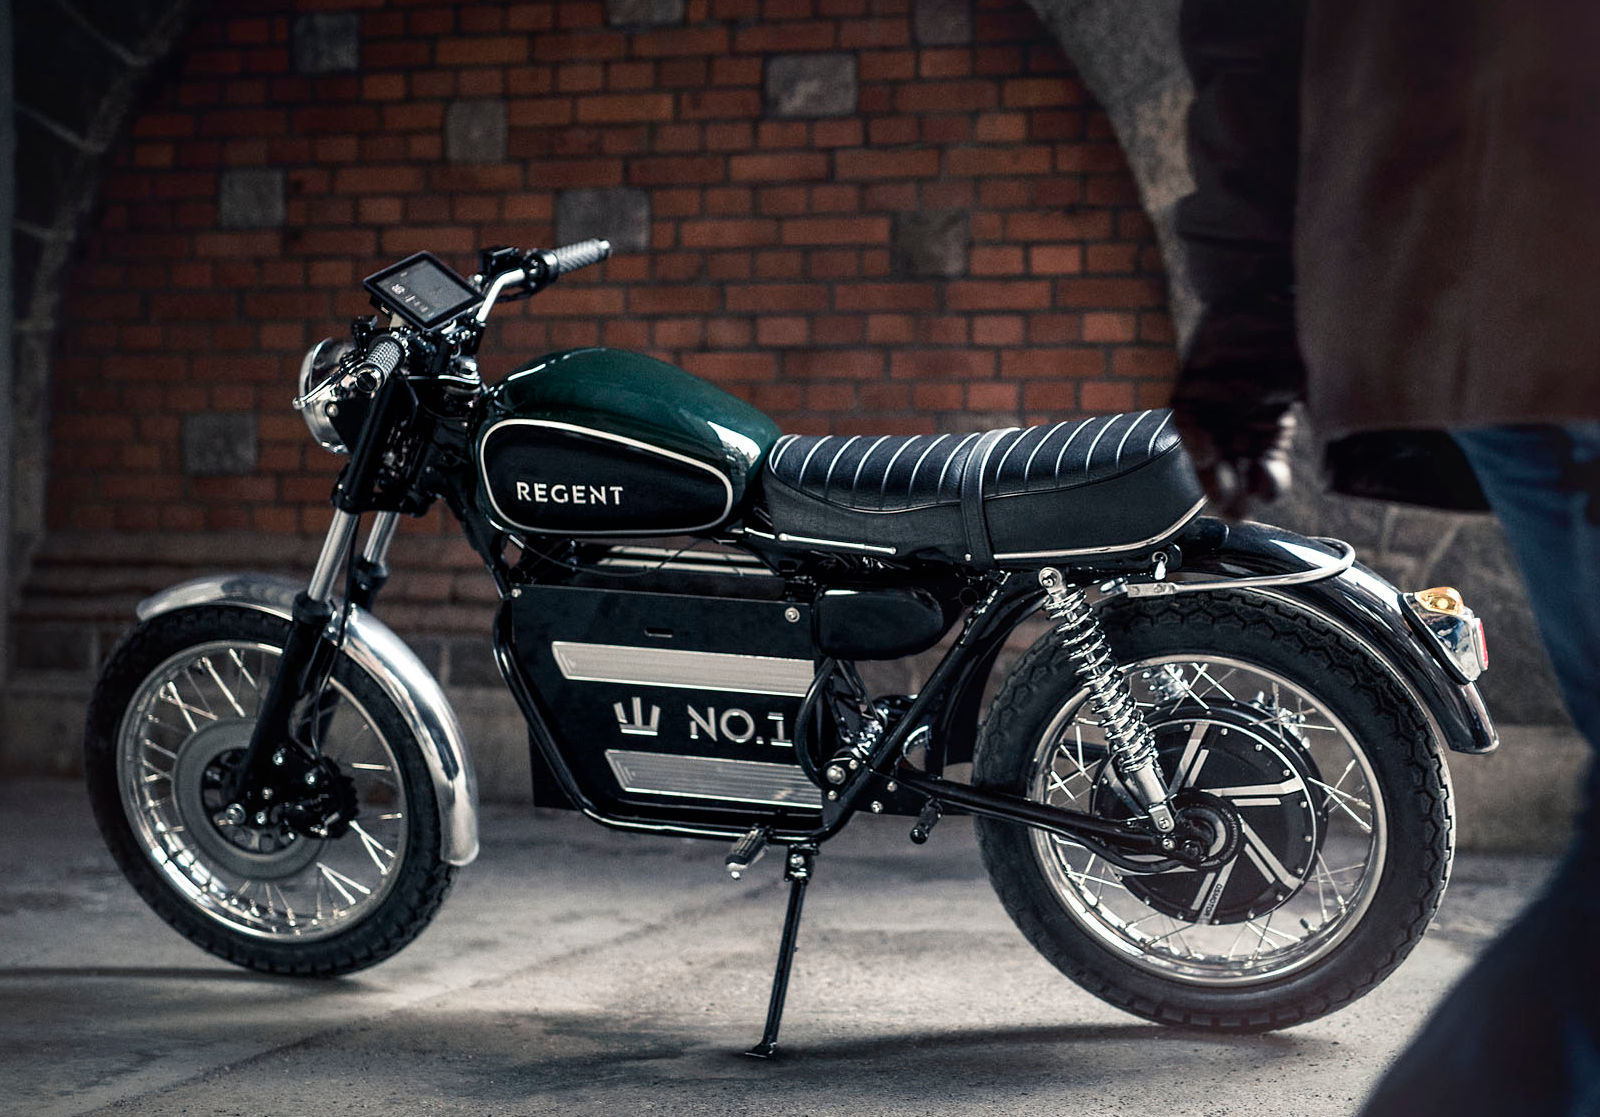 Regent Motorcycles Releasing Retro-Style Electric for 2020 (Bike Reports) (News)